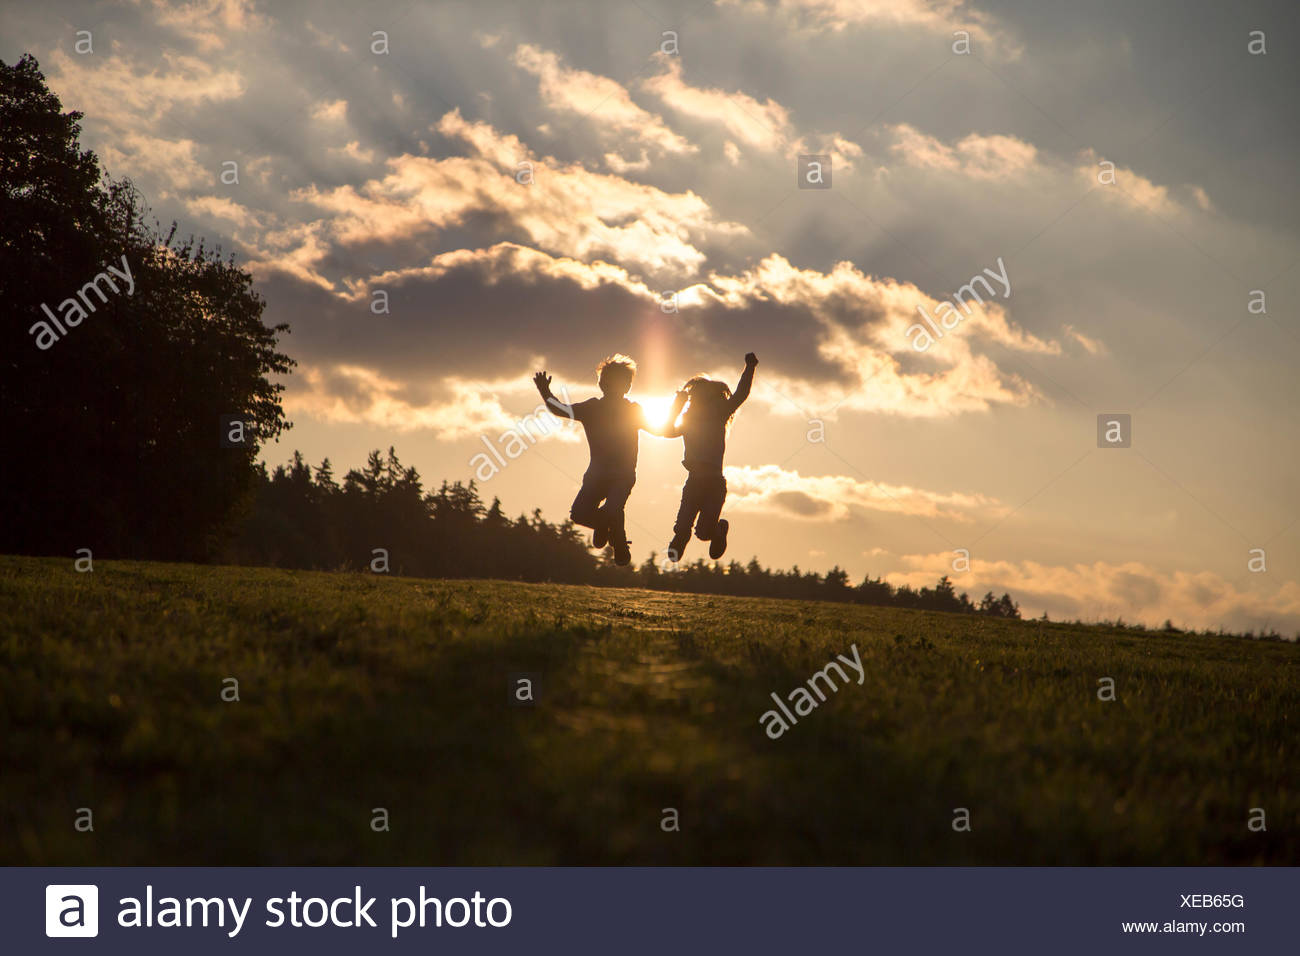 Silhouettes of two children jumping side by side on a meadow at backlight Stock Photo